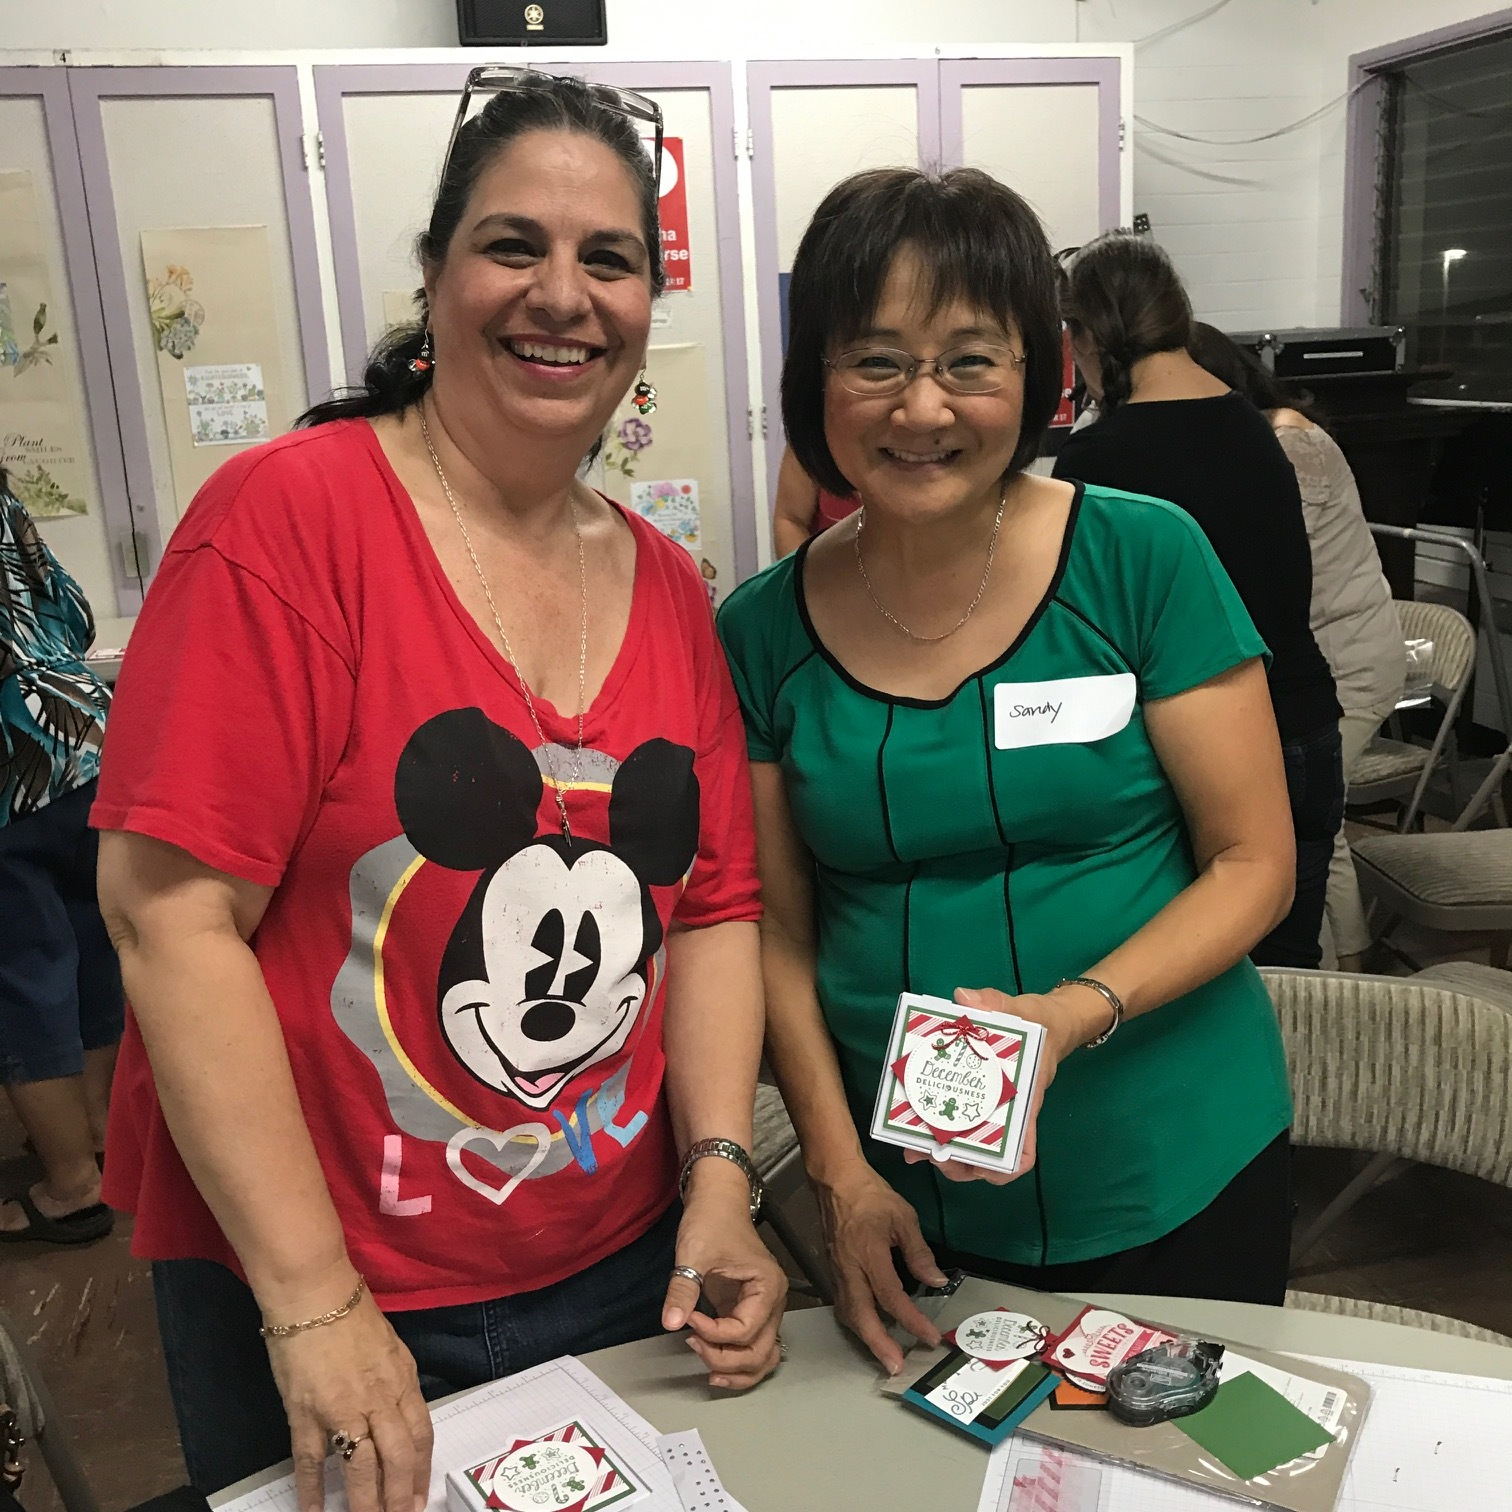 Julie and Sandy at Inspiration Night - www.stampedwithaloha.com